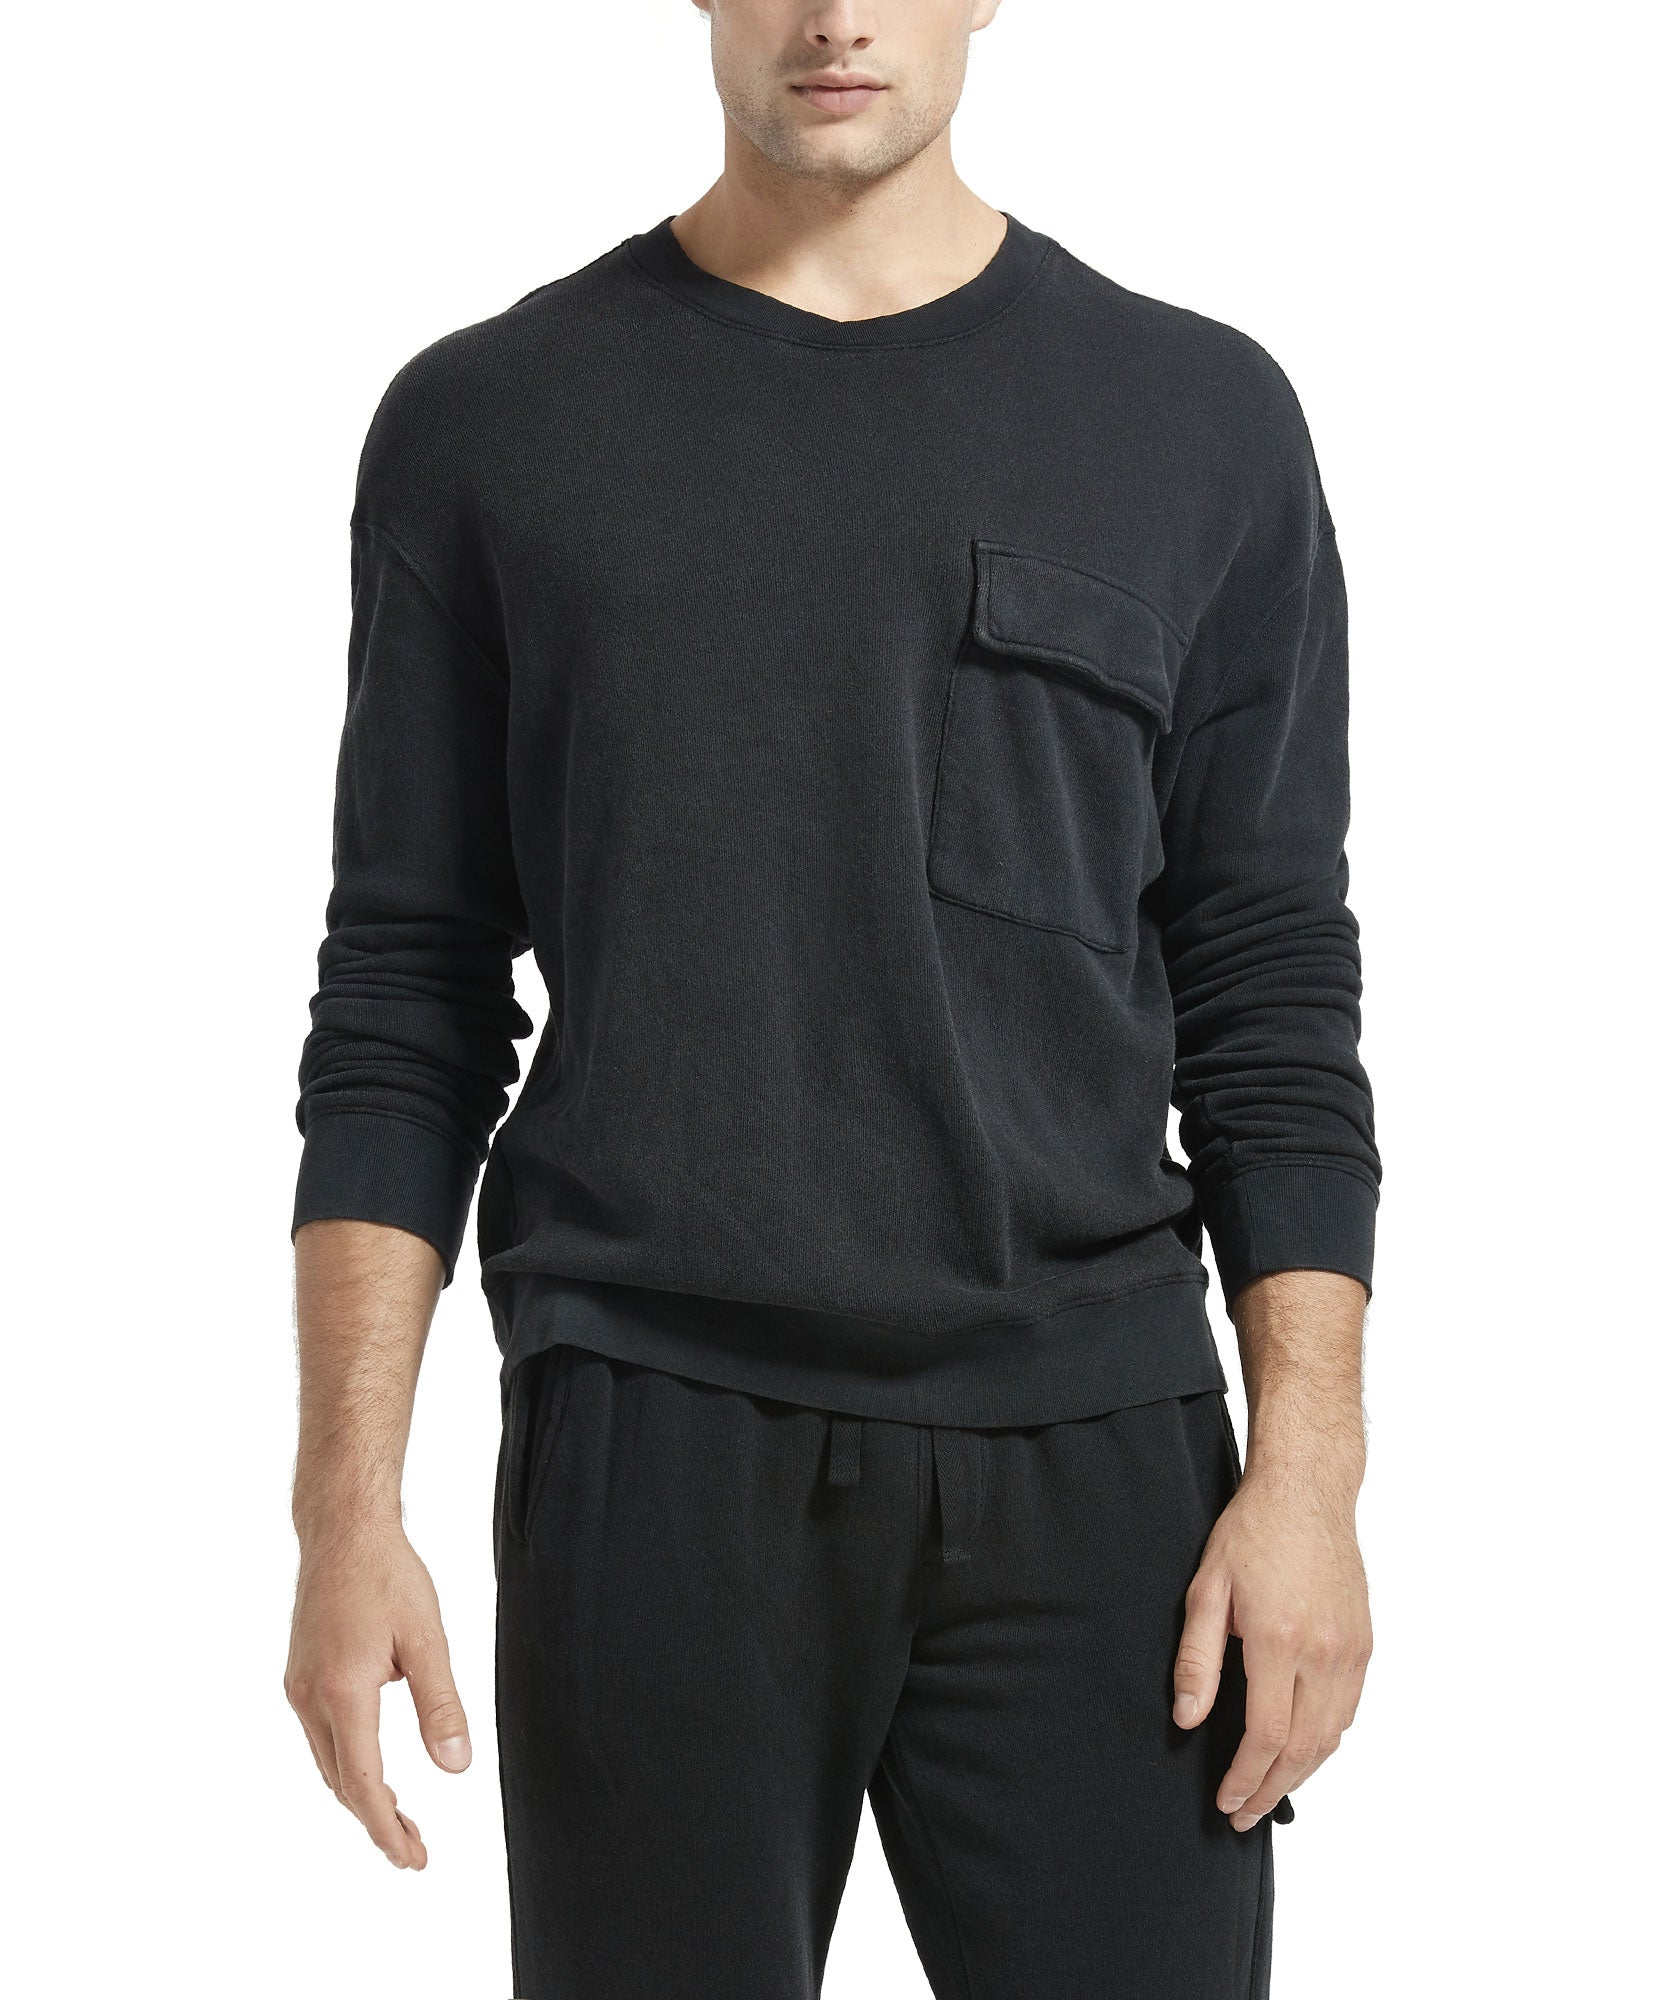 Charcoal French Terry Cargo Pocket Sweatshirt - Men's Luxe Loungewear by ATM Anthony Thomas Melillo